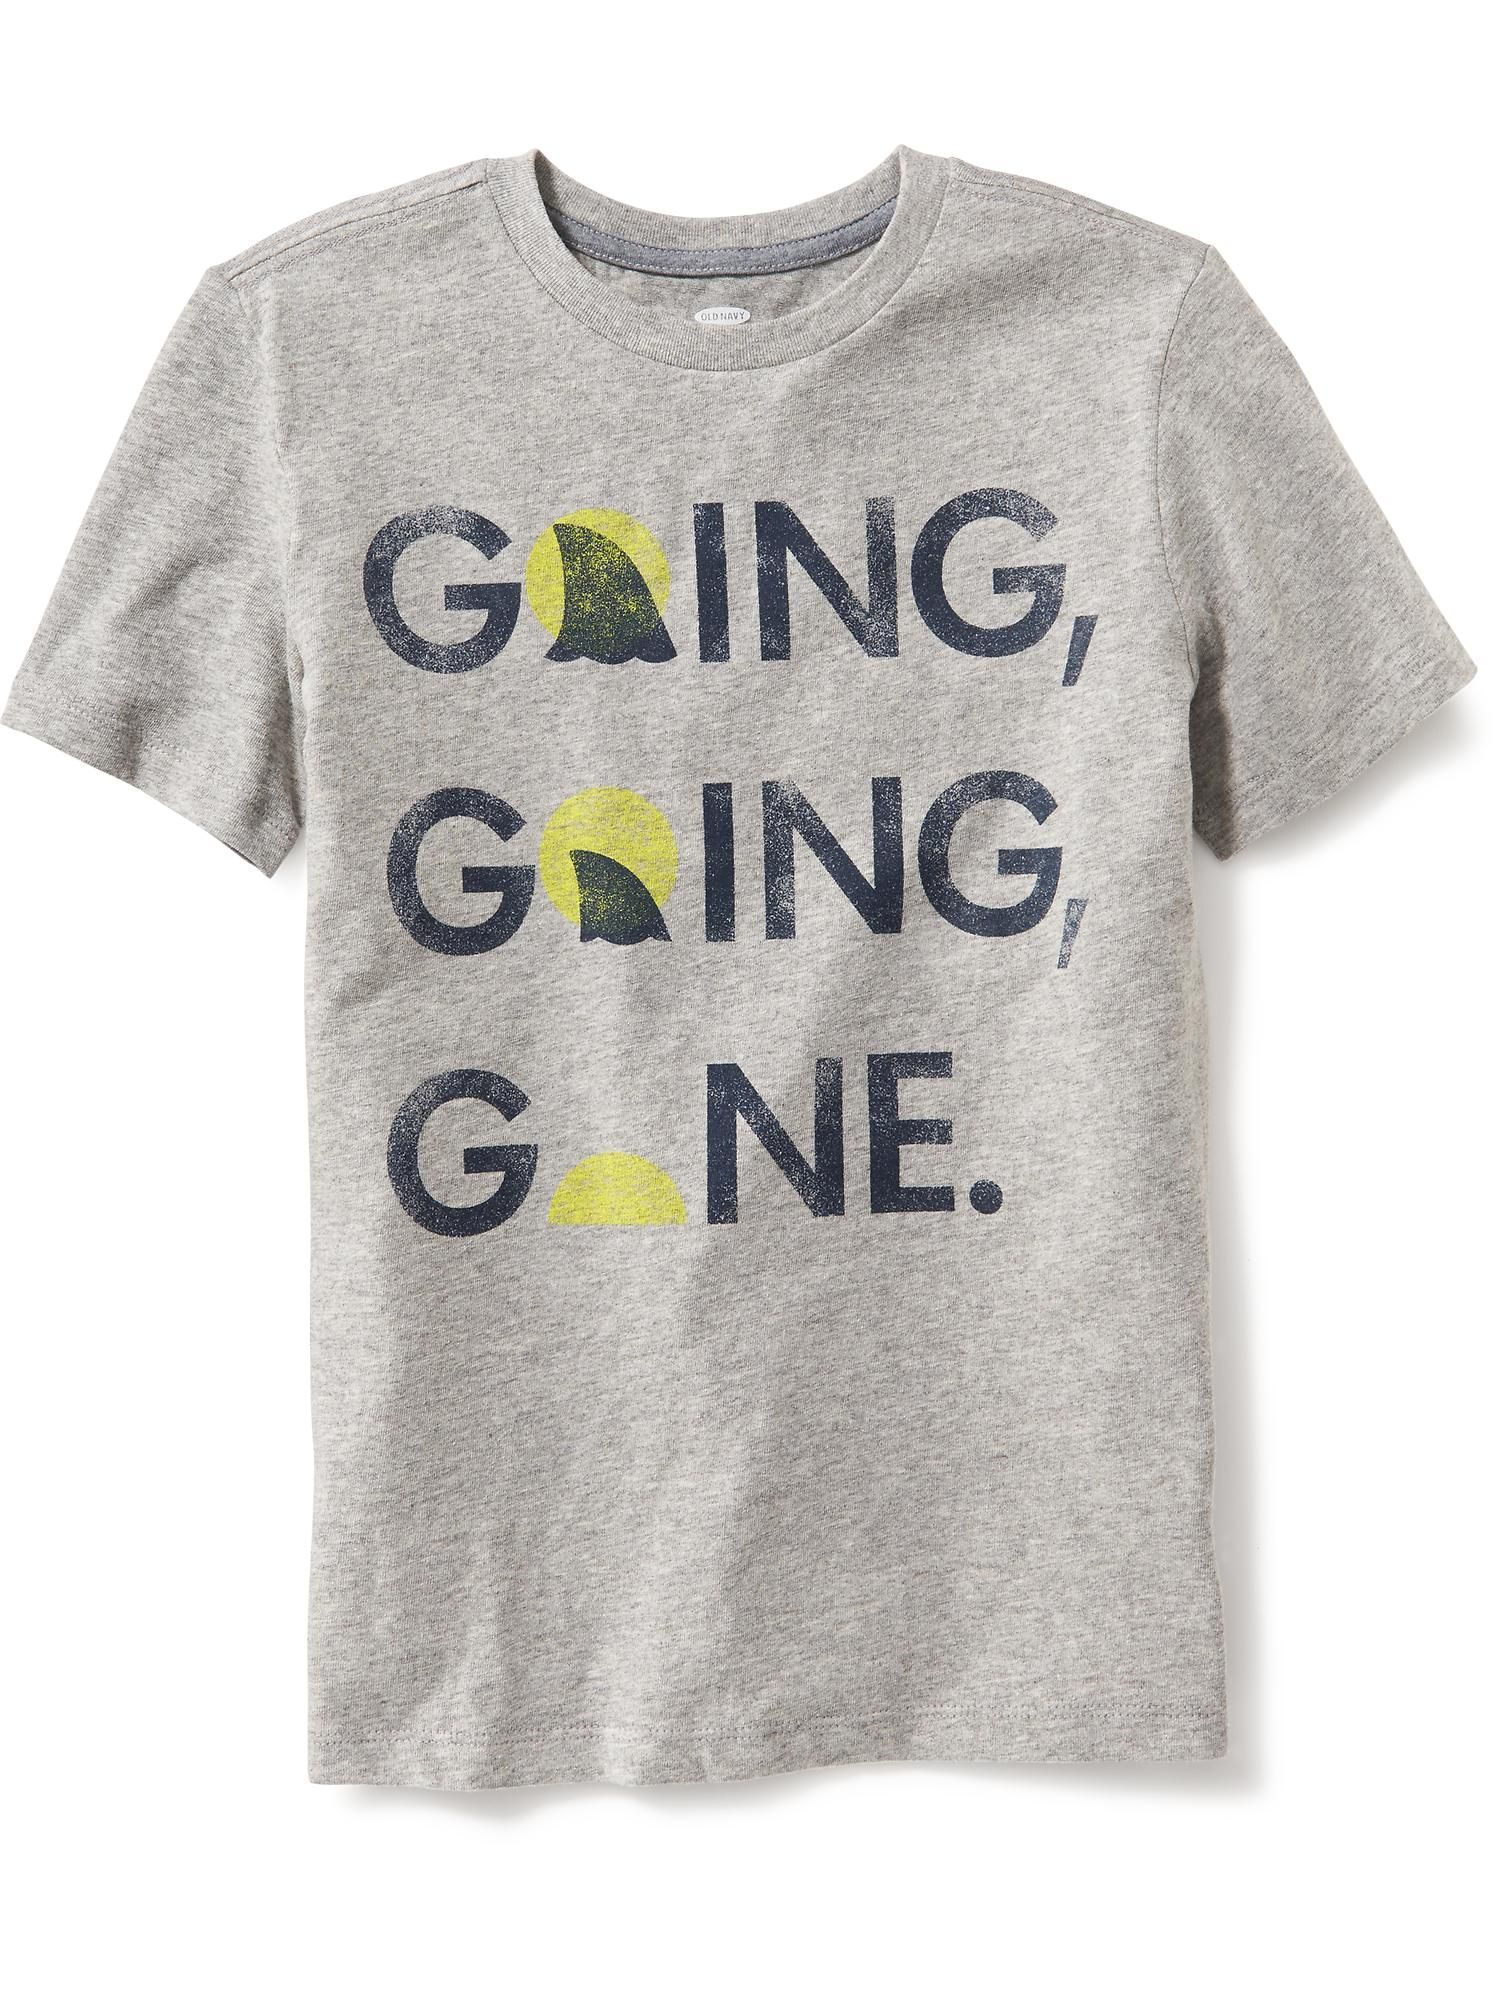 Graphic Tee for Boys | Old Navy